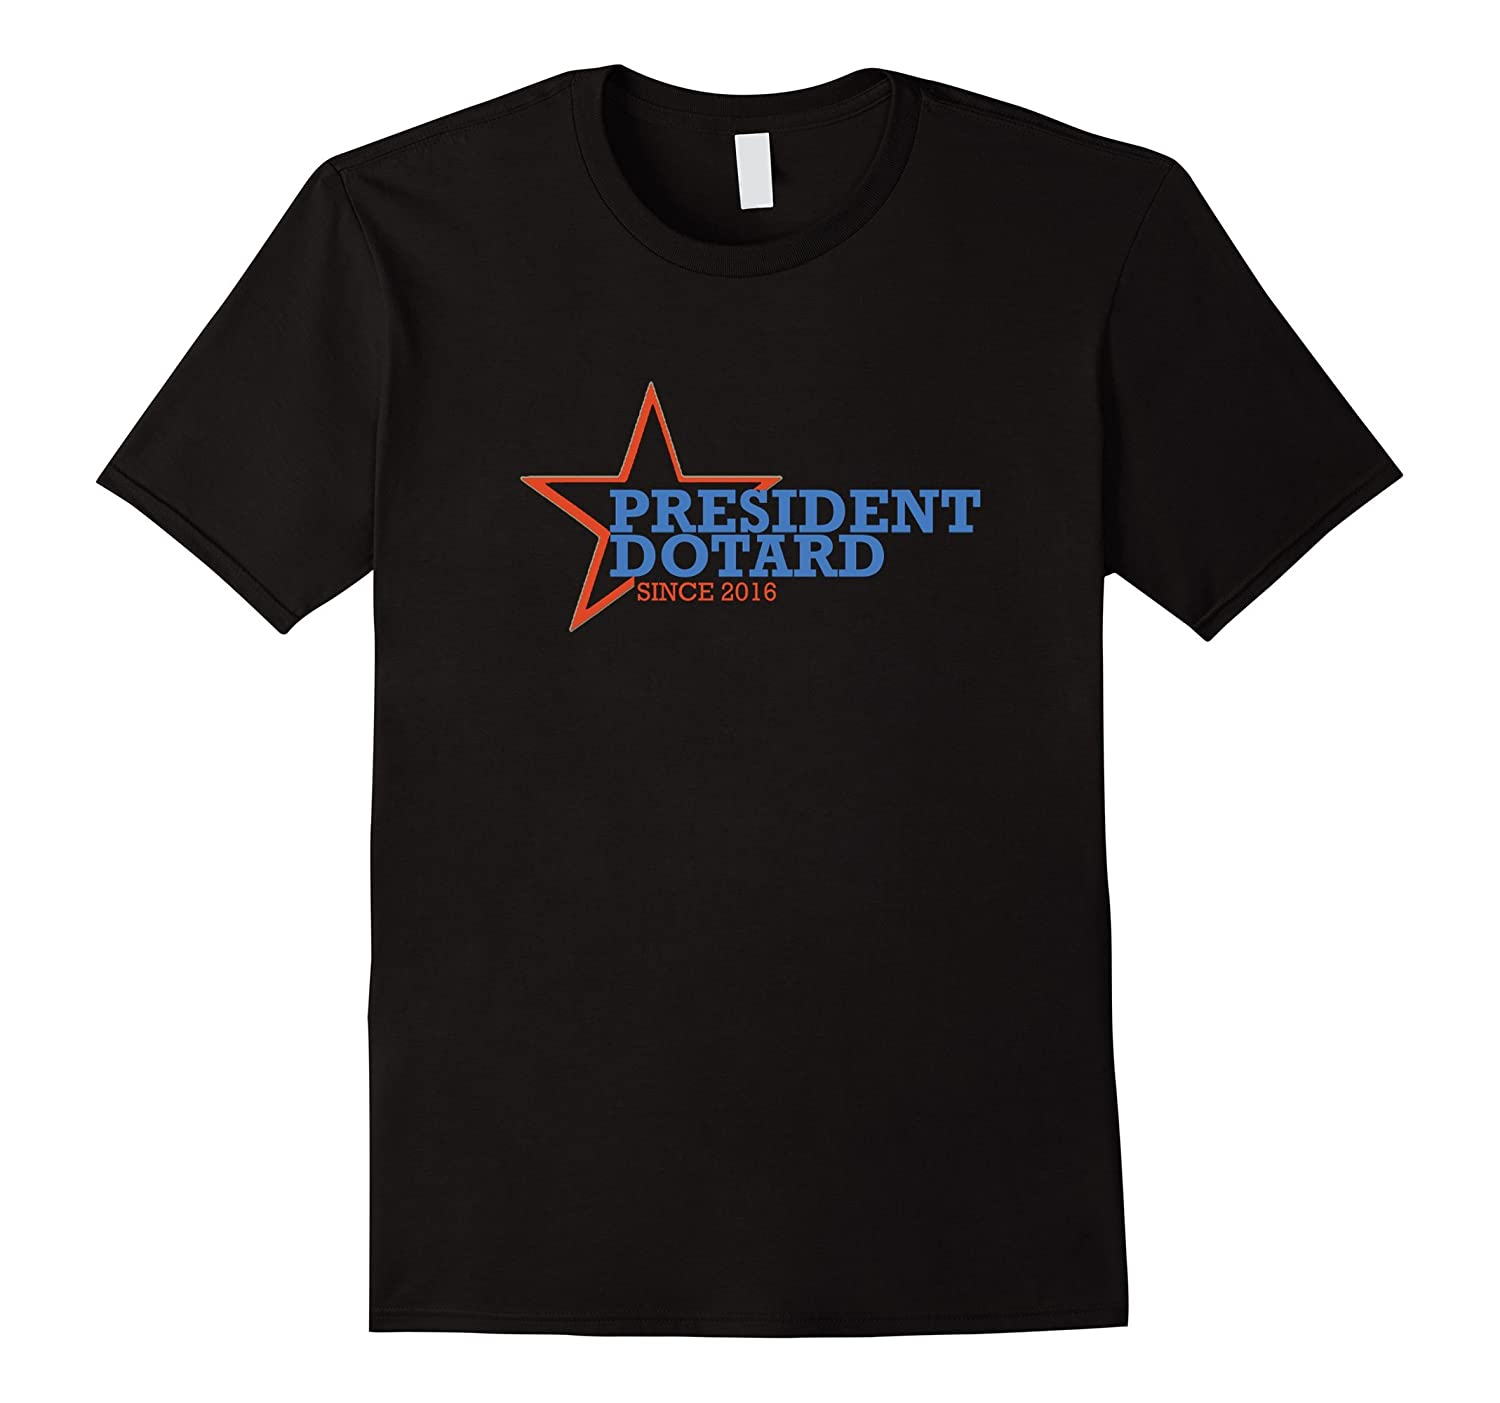 Since 2016 President Dotard Campaign T-Shirt